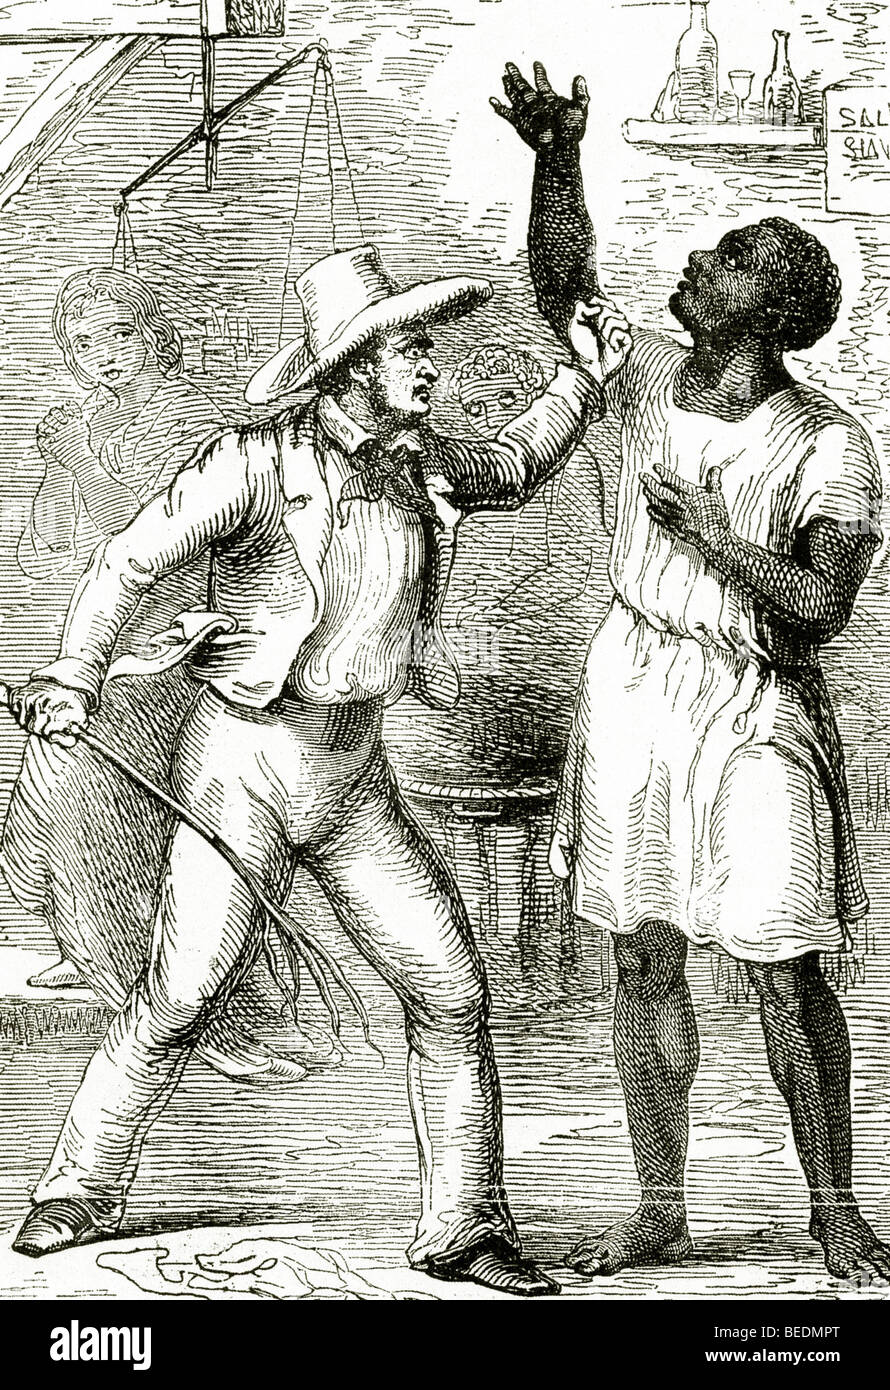 UNCLE TOM'S CABIN A slave owner attacks the book's hero in this illustration from the first 1852 edition - Stock Image